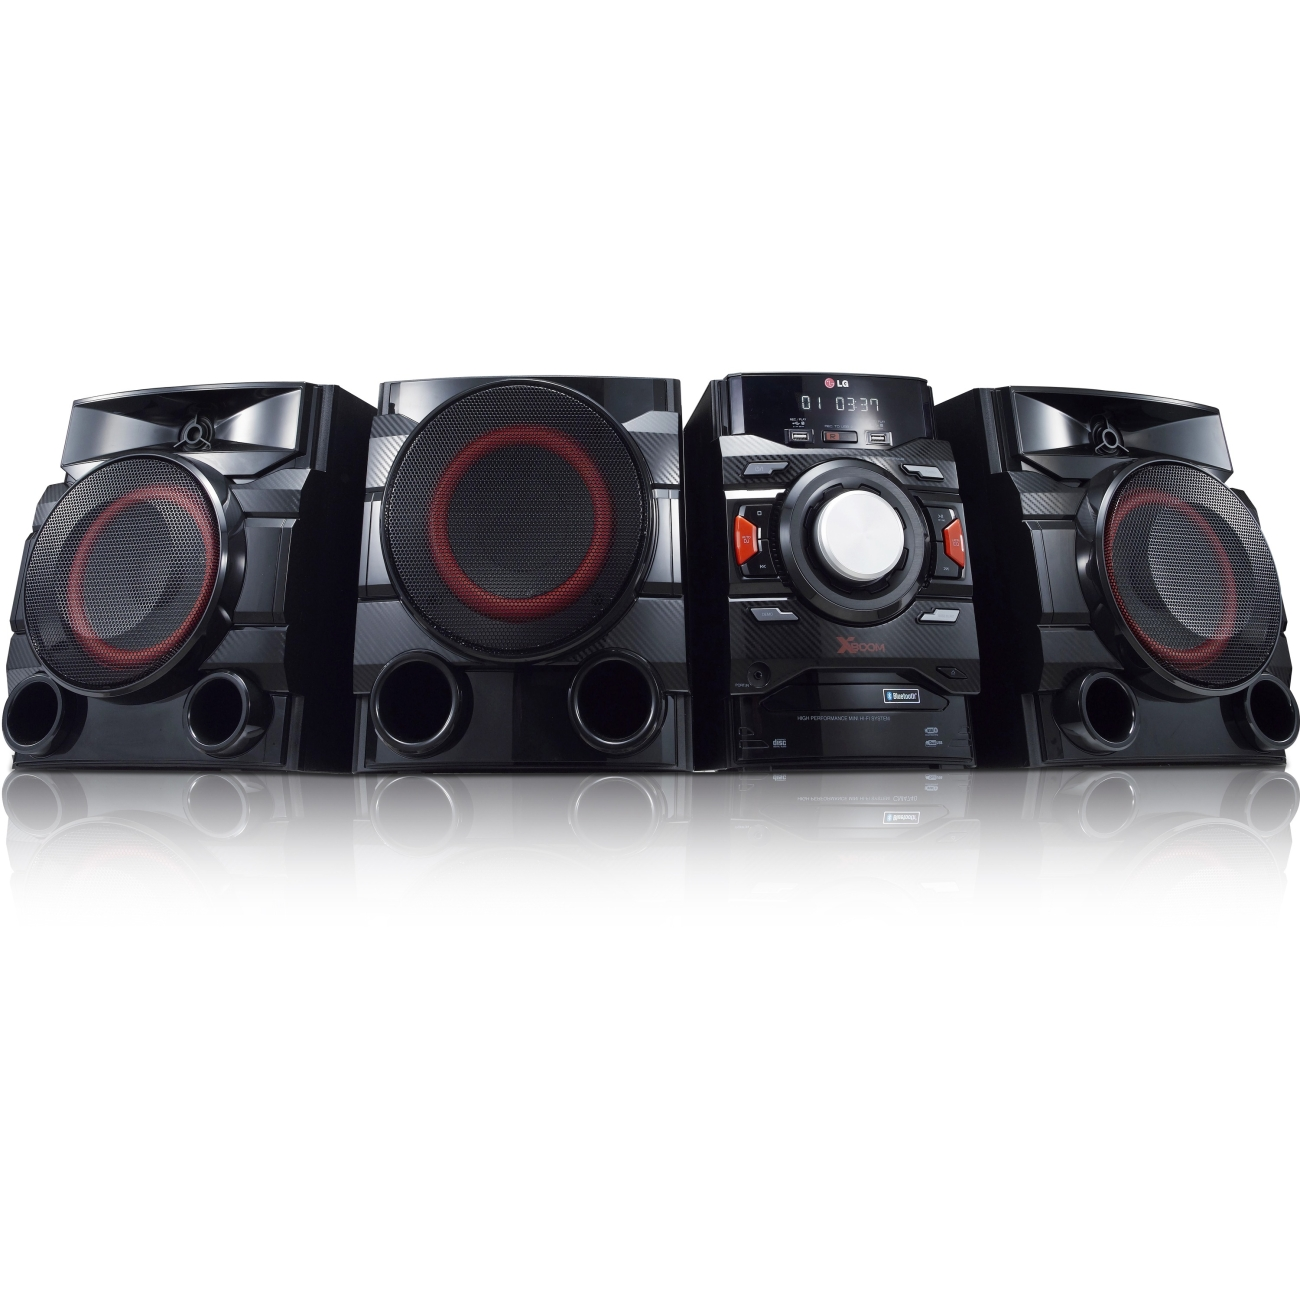 LG - CM4550 - 700W 2.1ch Mini Shelf System with Built-in Subwoofer and Bluetooth